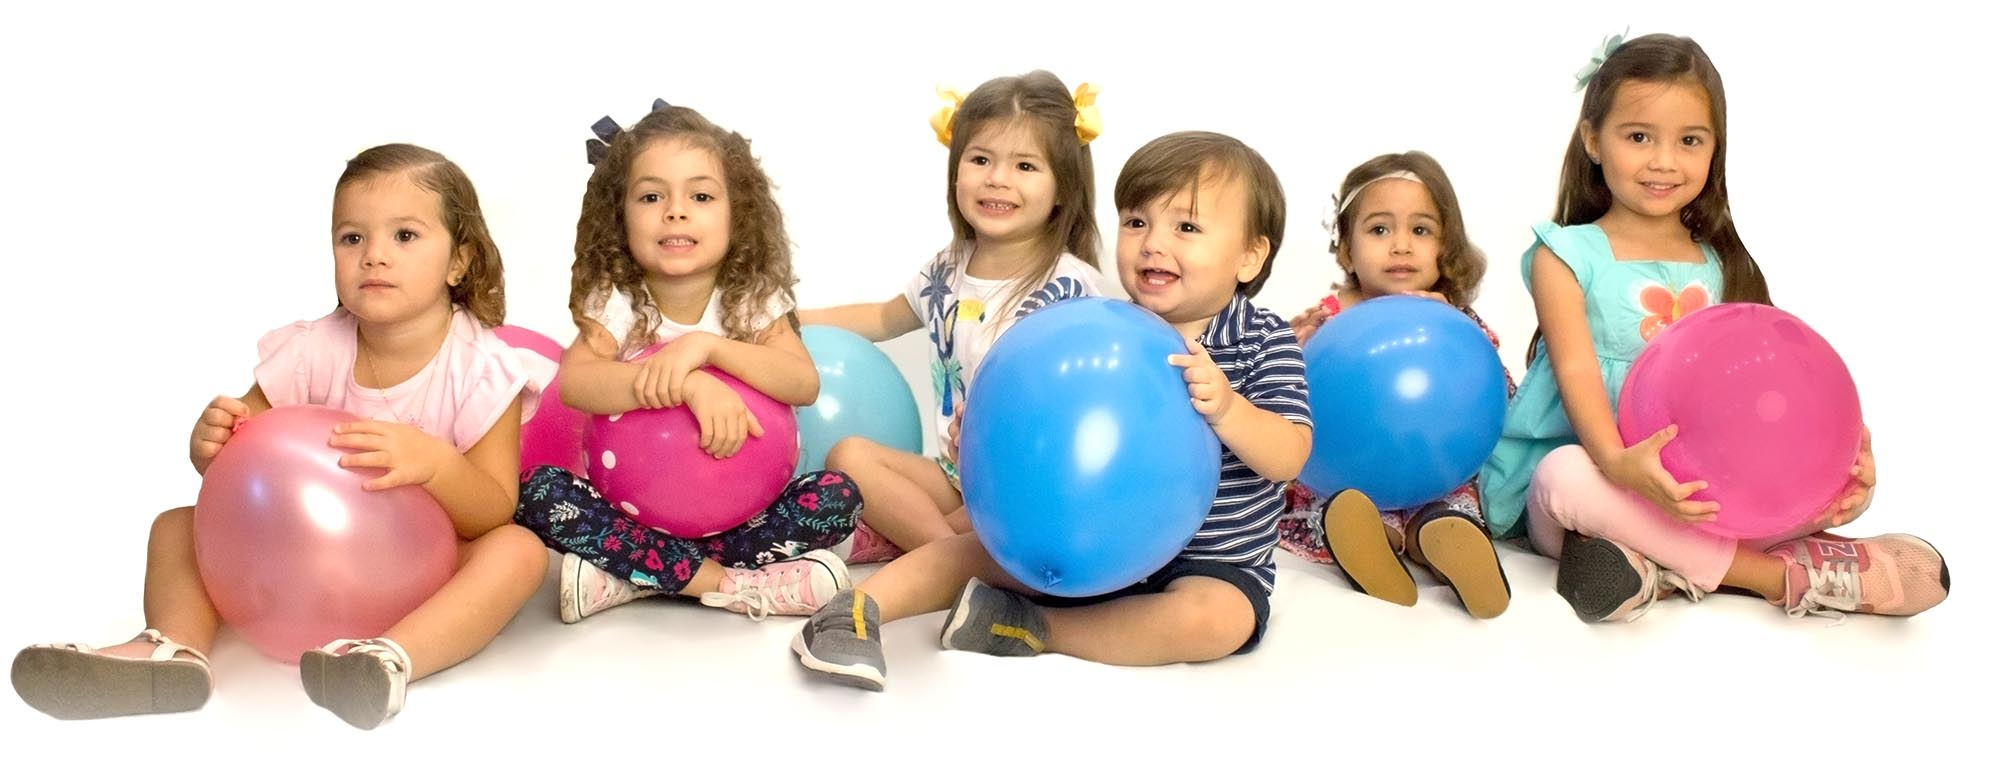 Little kids holding balloons